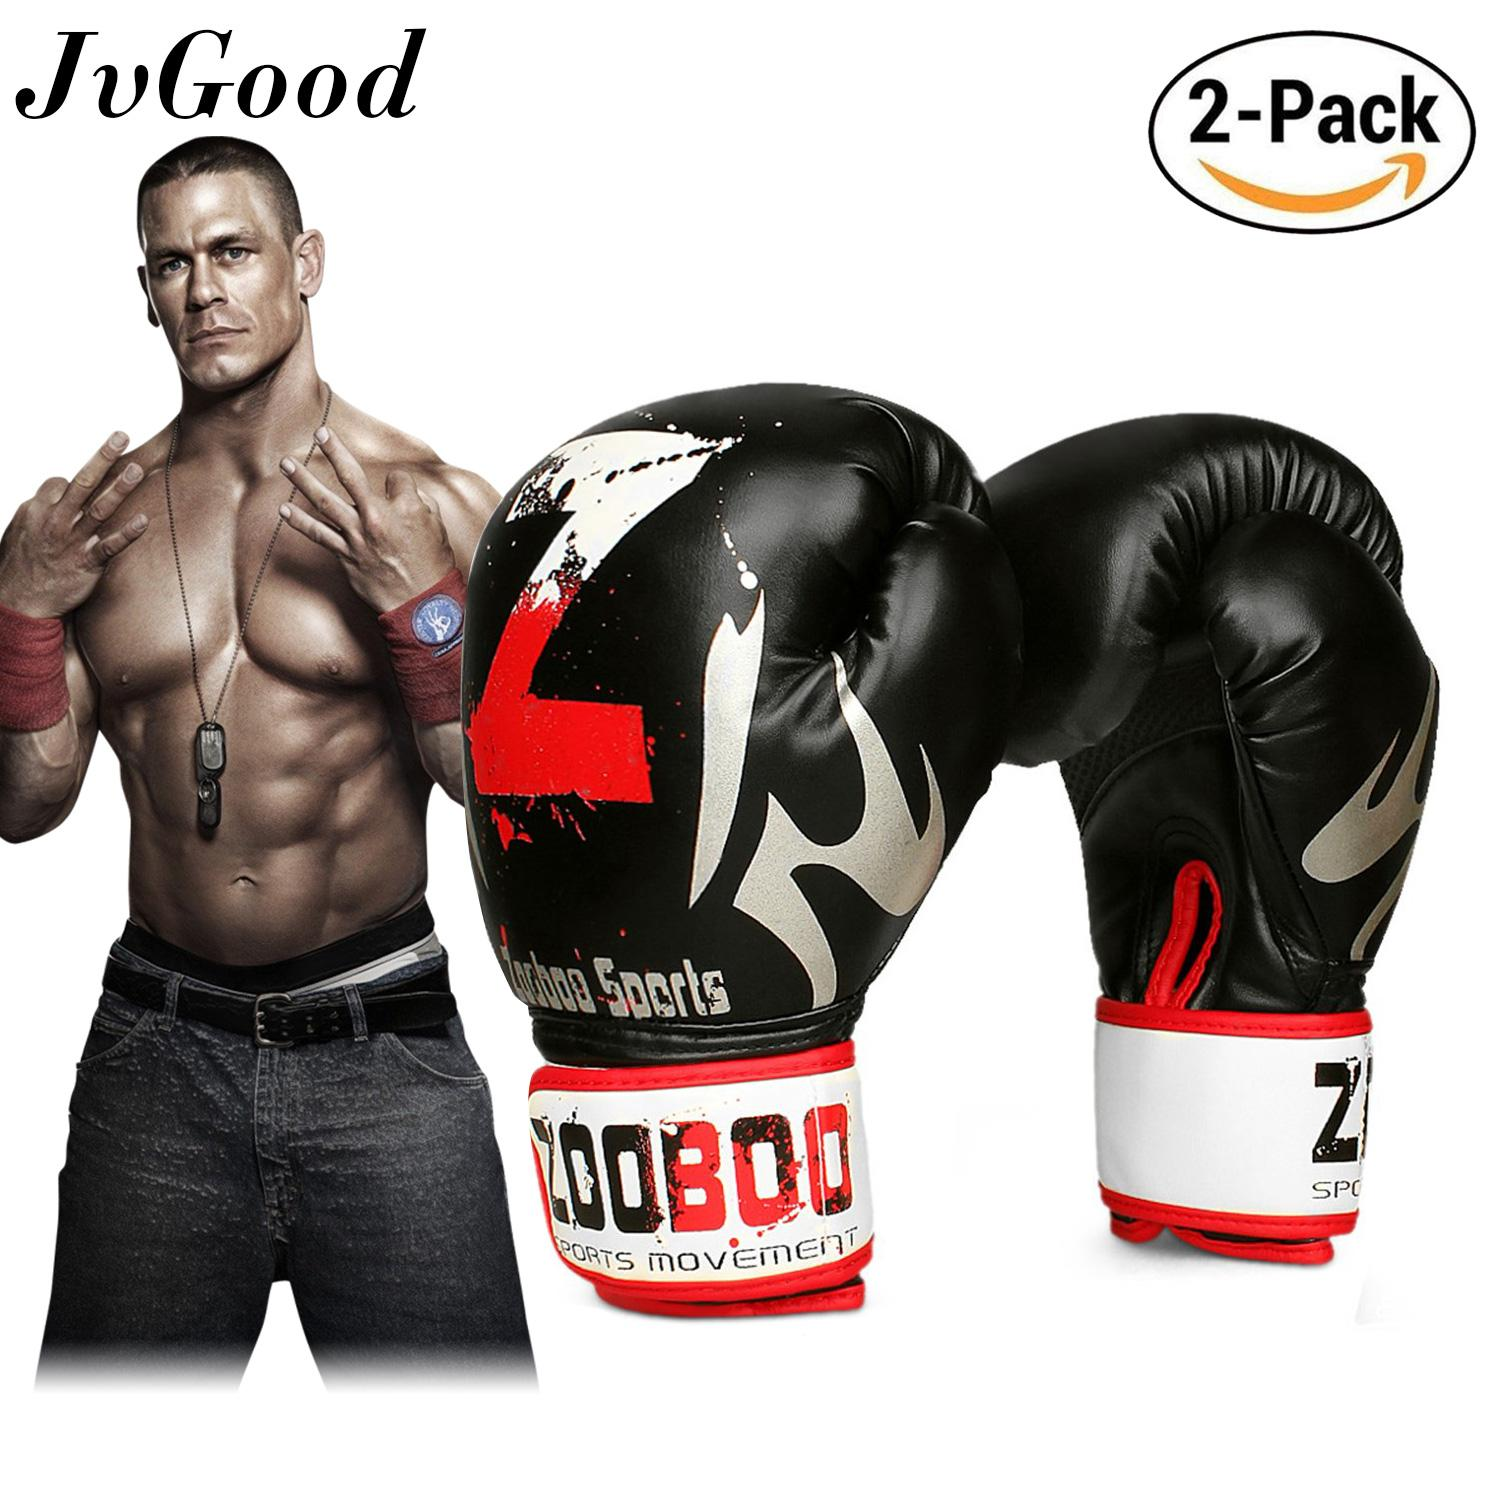 Jvgood Sarung Tangan Tinju Boxing Punching Gloves Mitts 10oz Mma Muay Thai Training Pu Boxing Pads Fighting Kickboxing Sports Gloves Sparring Boxing Gloves Gym (1 Pair) By Jvgood.